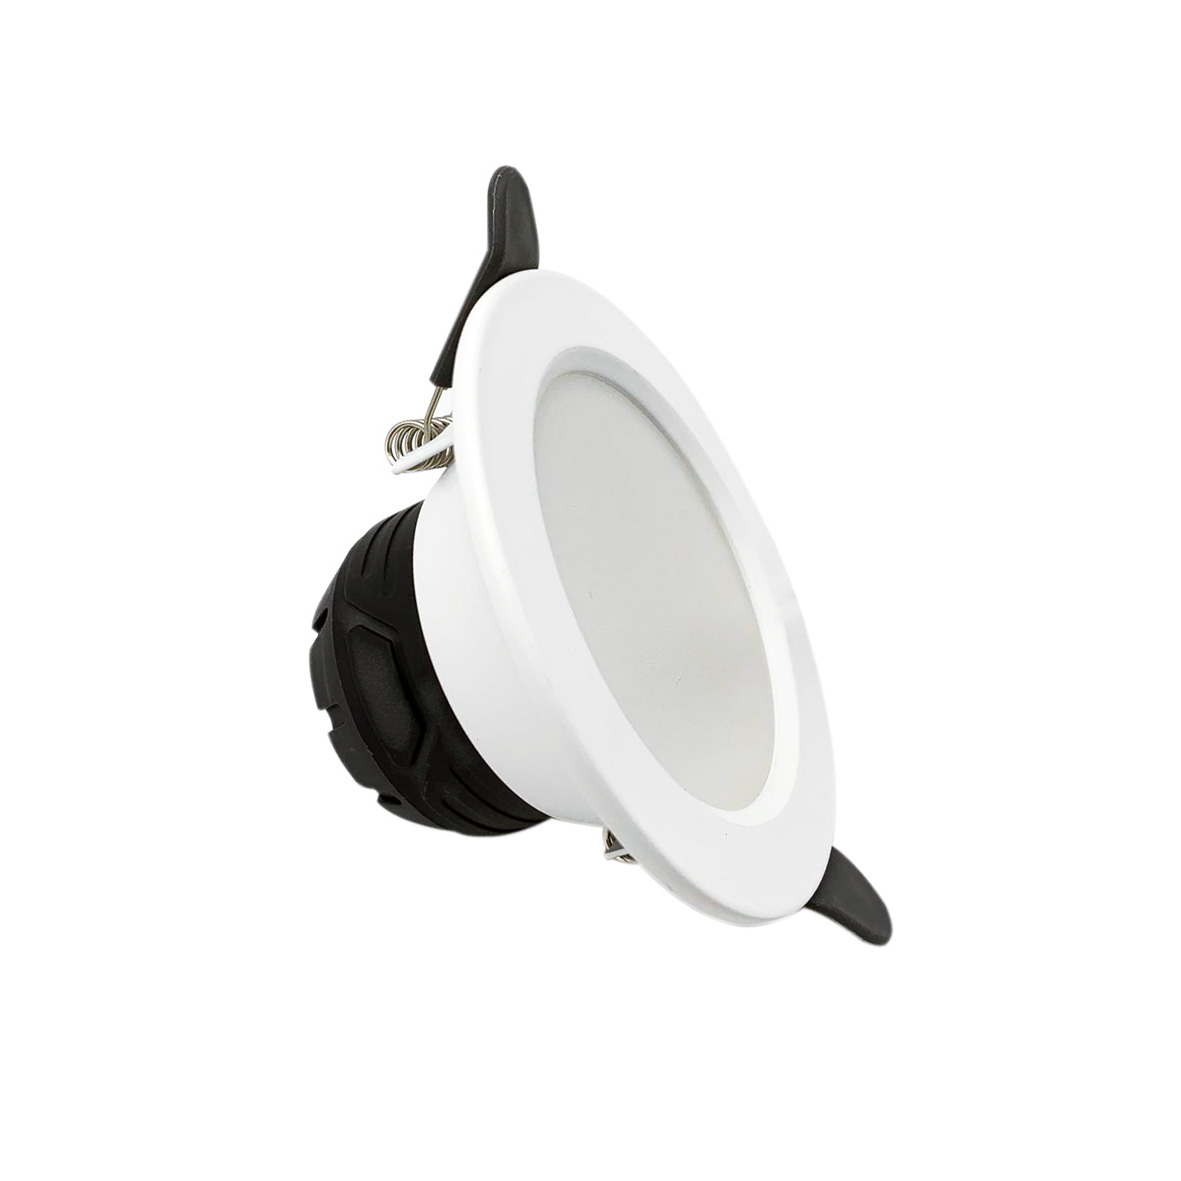 LED recessed spotlights